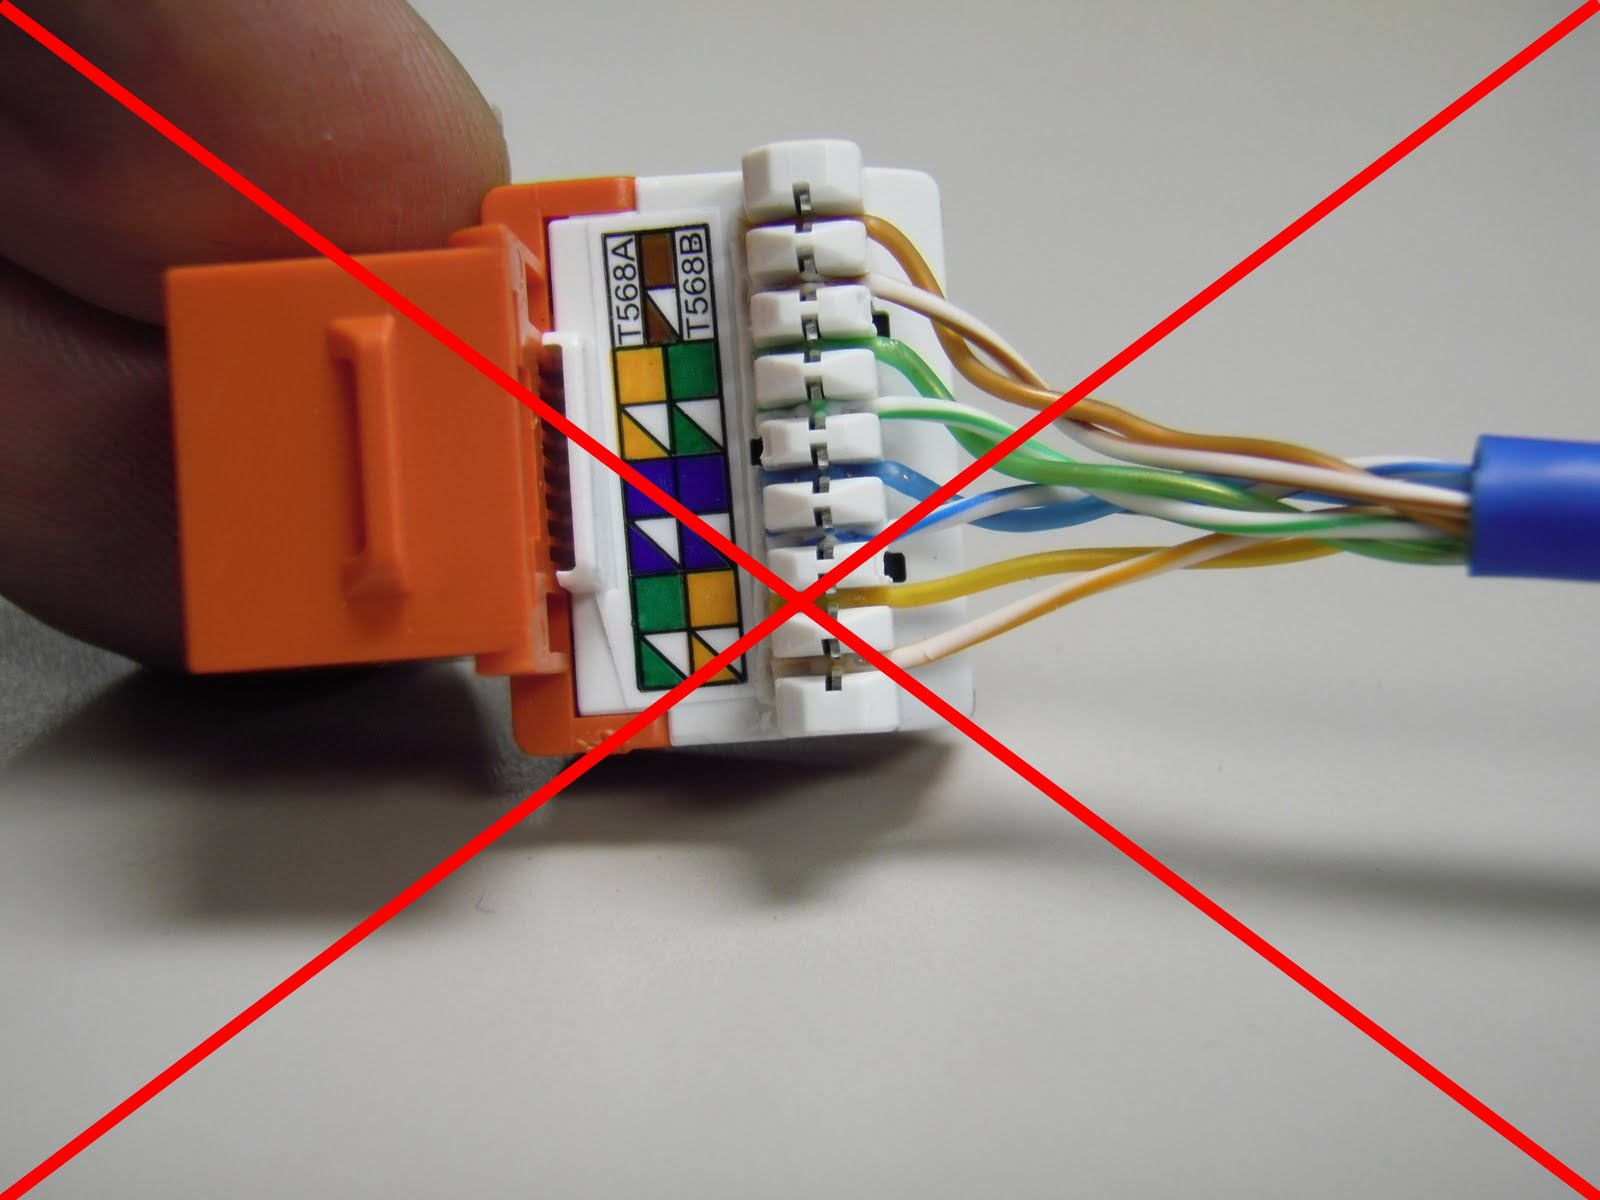 CAT5E+ER+JACK+PUNCHED+WRONG+RED+X the trench how to punch down cat5e cat6 keystone jacks cat 6 jack wiring diagram at edmiracle.co